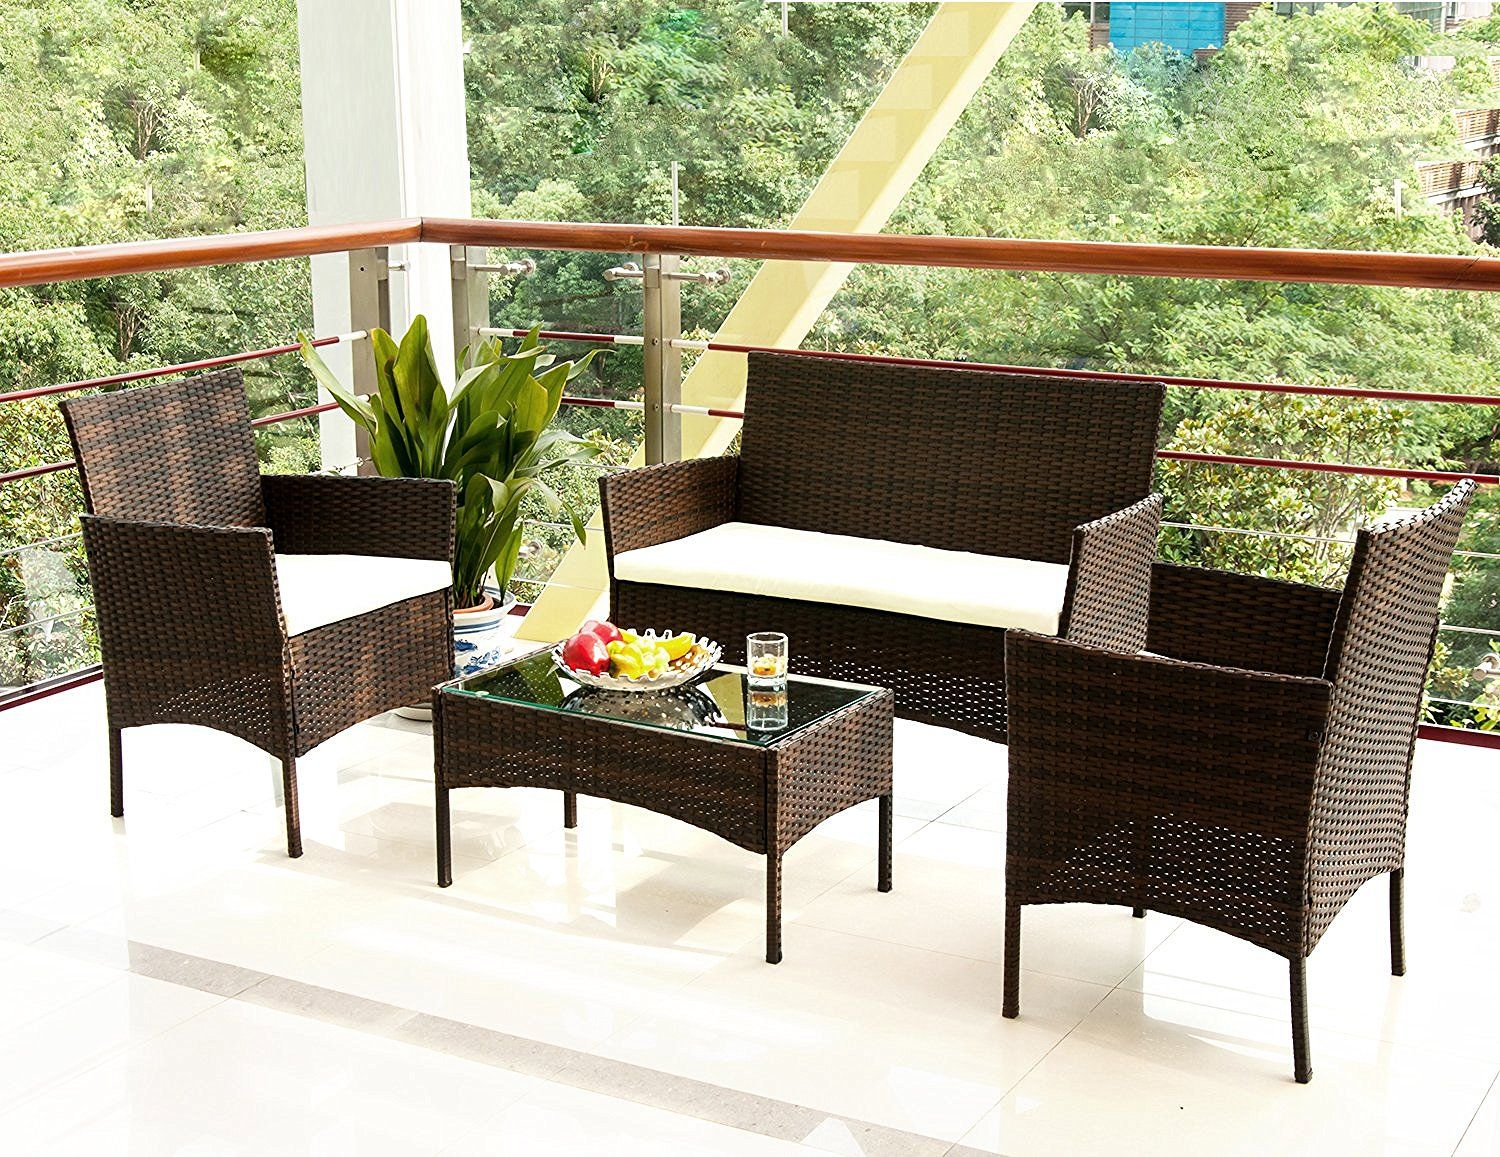 Attractive Amazon.com : Merax 4 PC Outdoor Garden Rattan Patio Furniture Set Cushioned  Seat Wicker